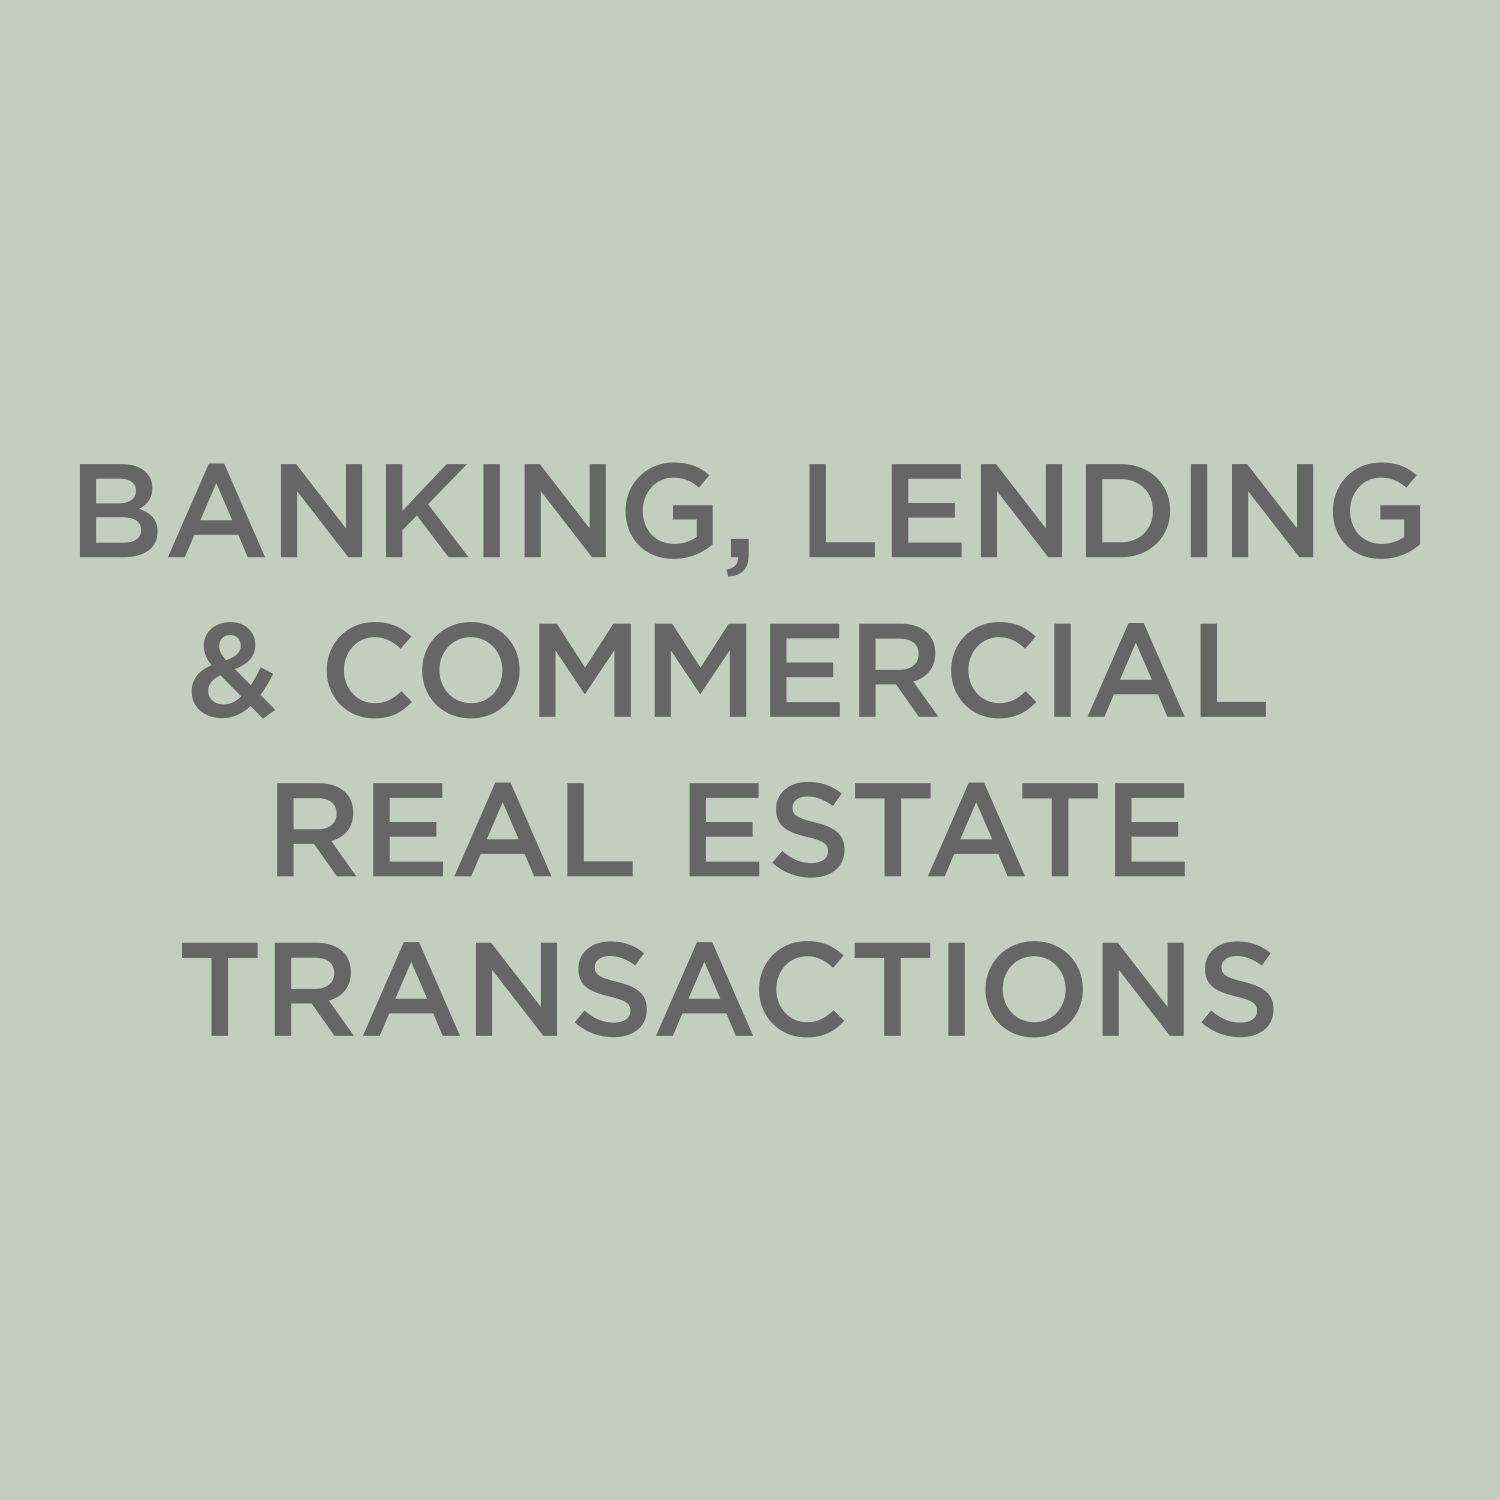 Banking, Lending and Commercial Real Estate Transactions